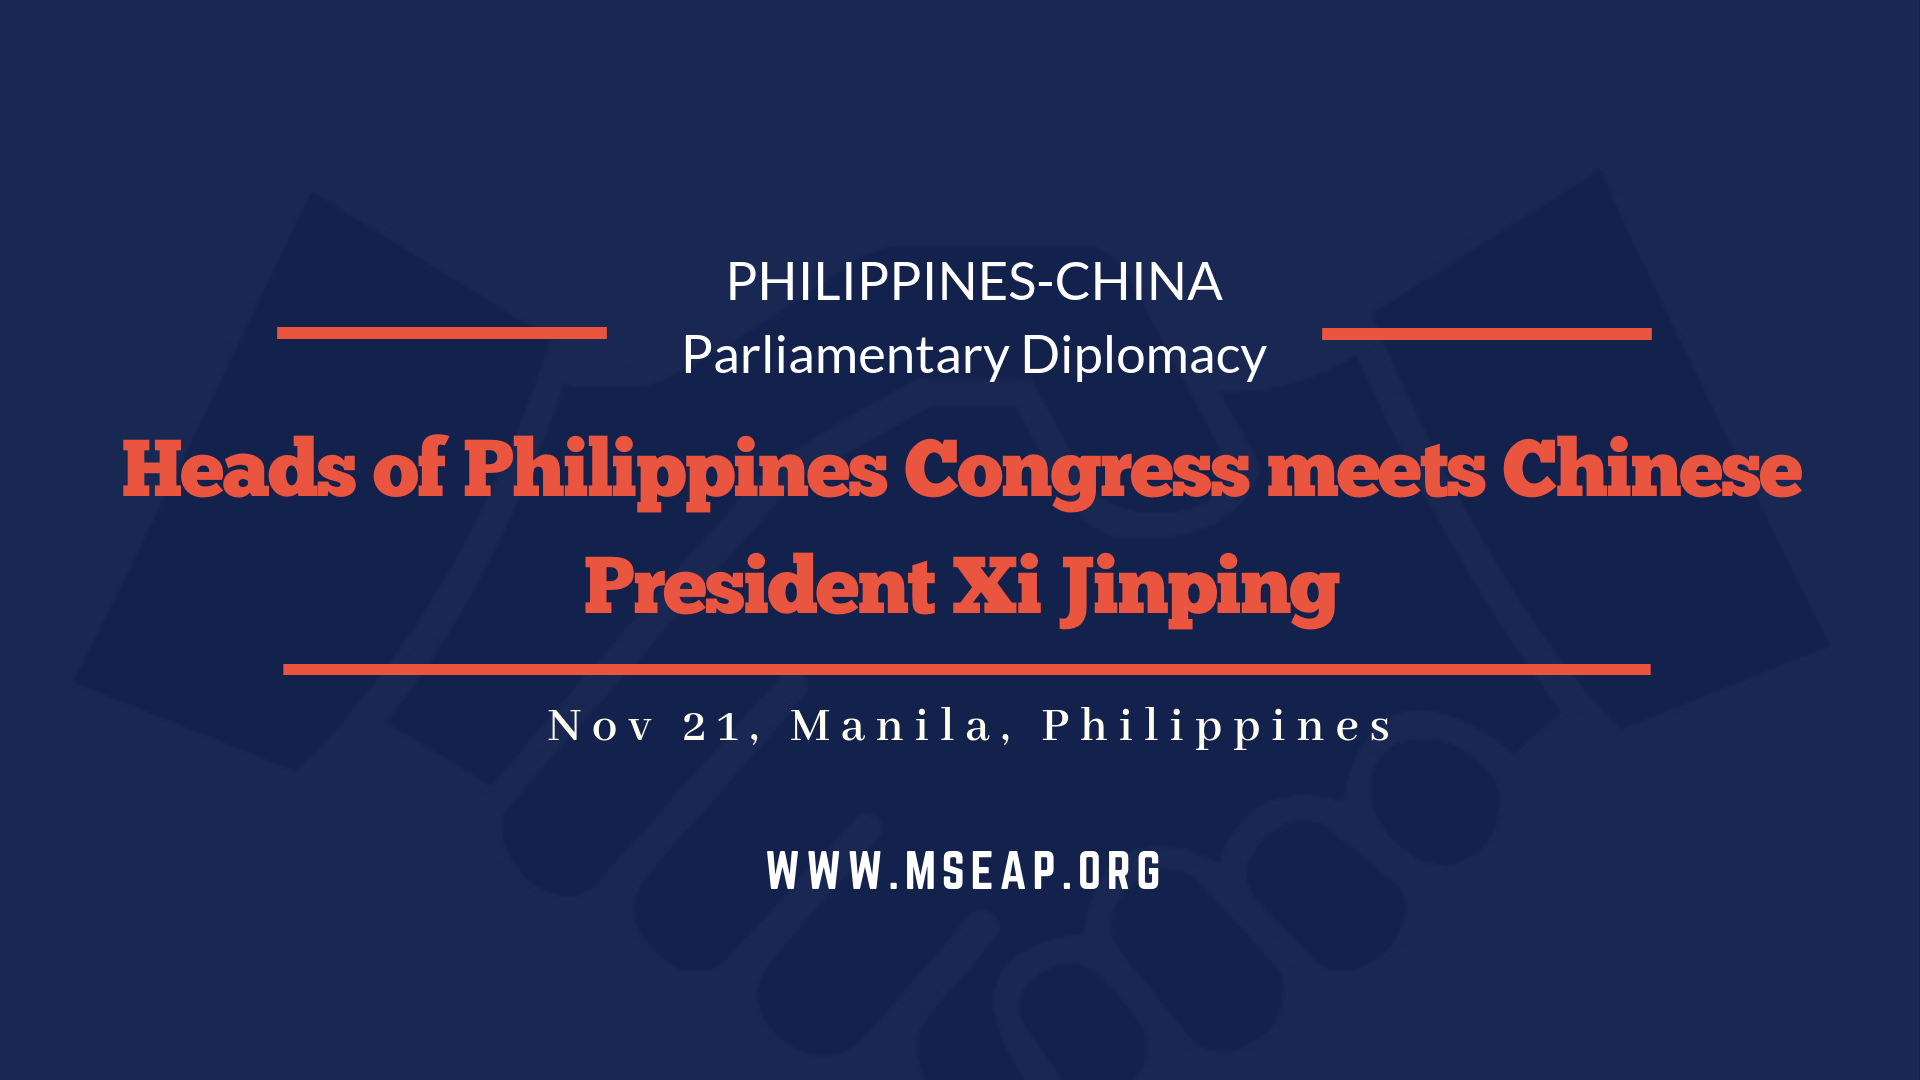 Heads of Philippines Congress meets Chinese President Xi Jinping